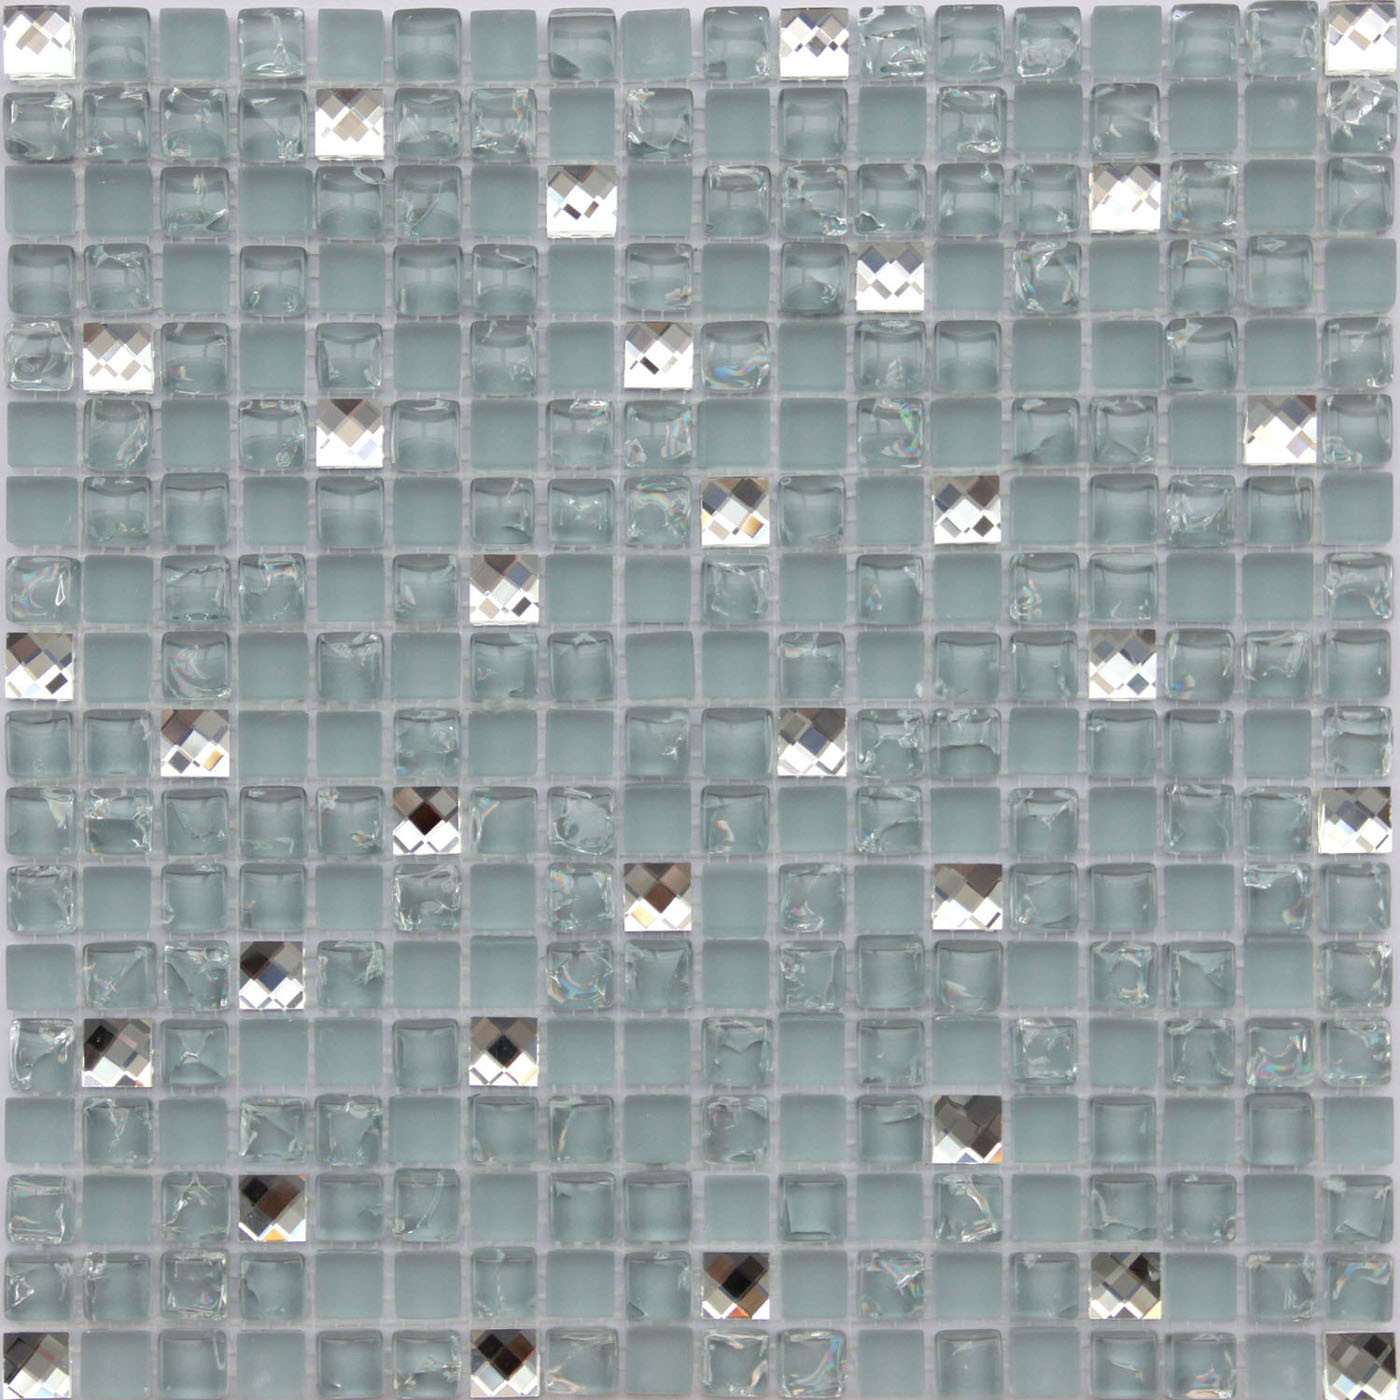 China Ice Crackle Glass Mosaic Tiles Photos Pictures